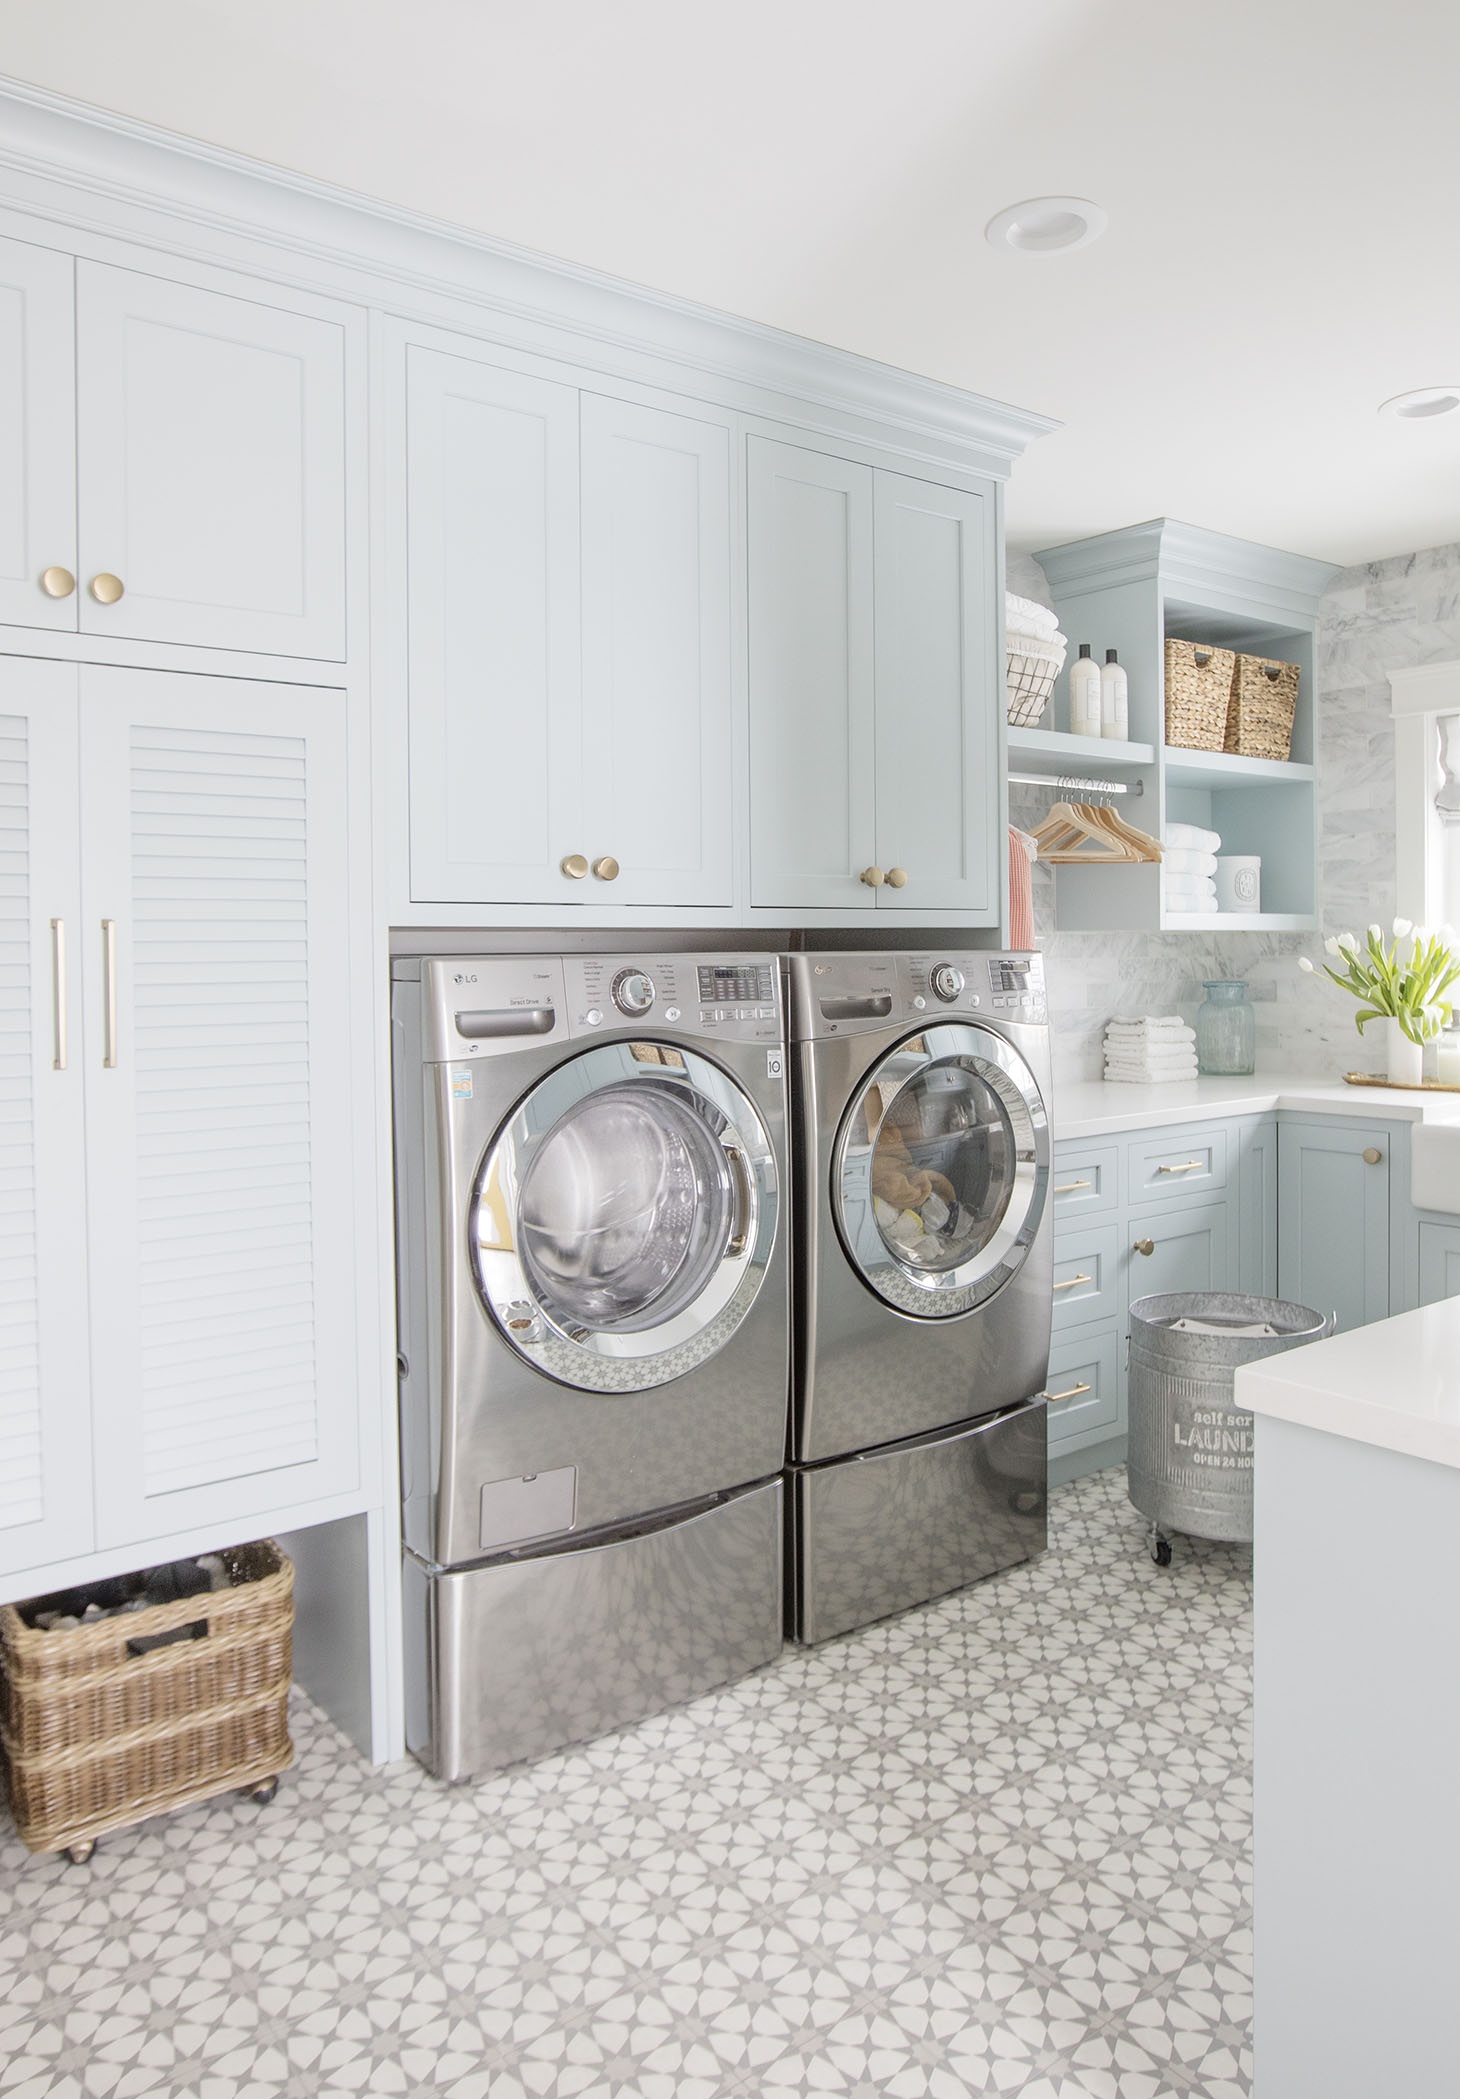 Beautiful laundry room design with light blue